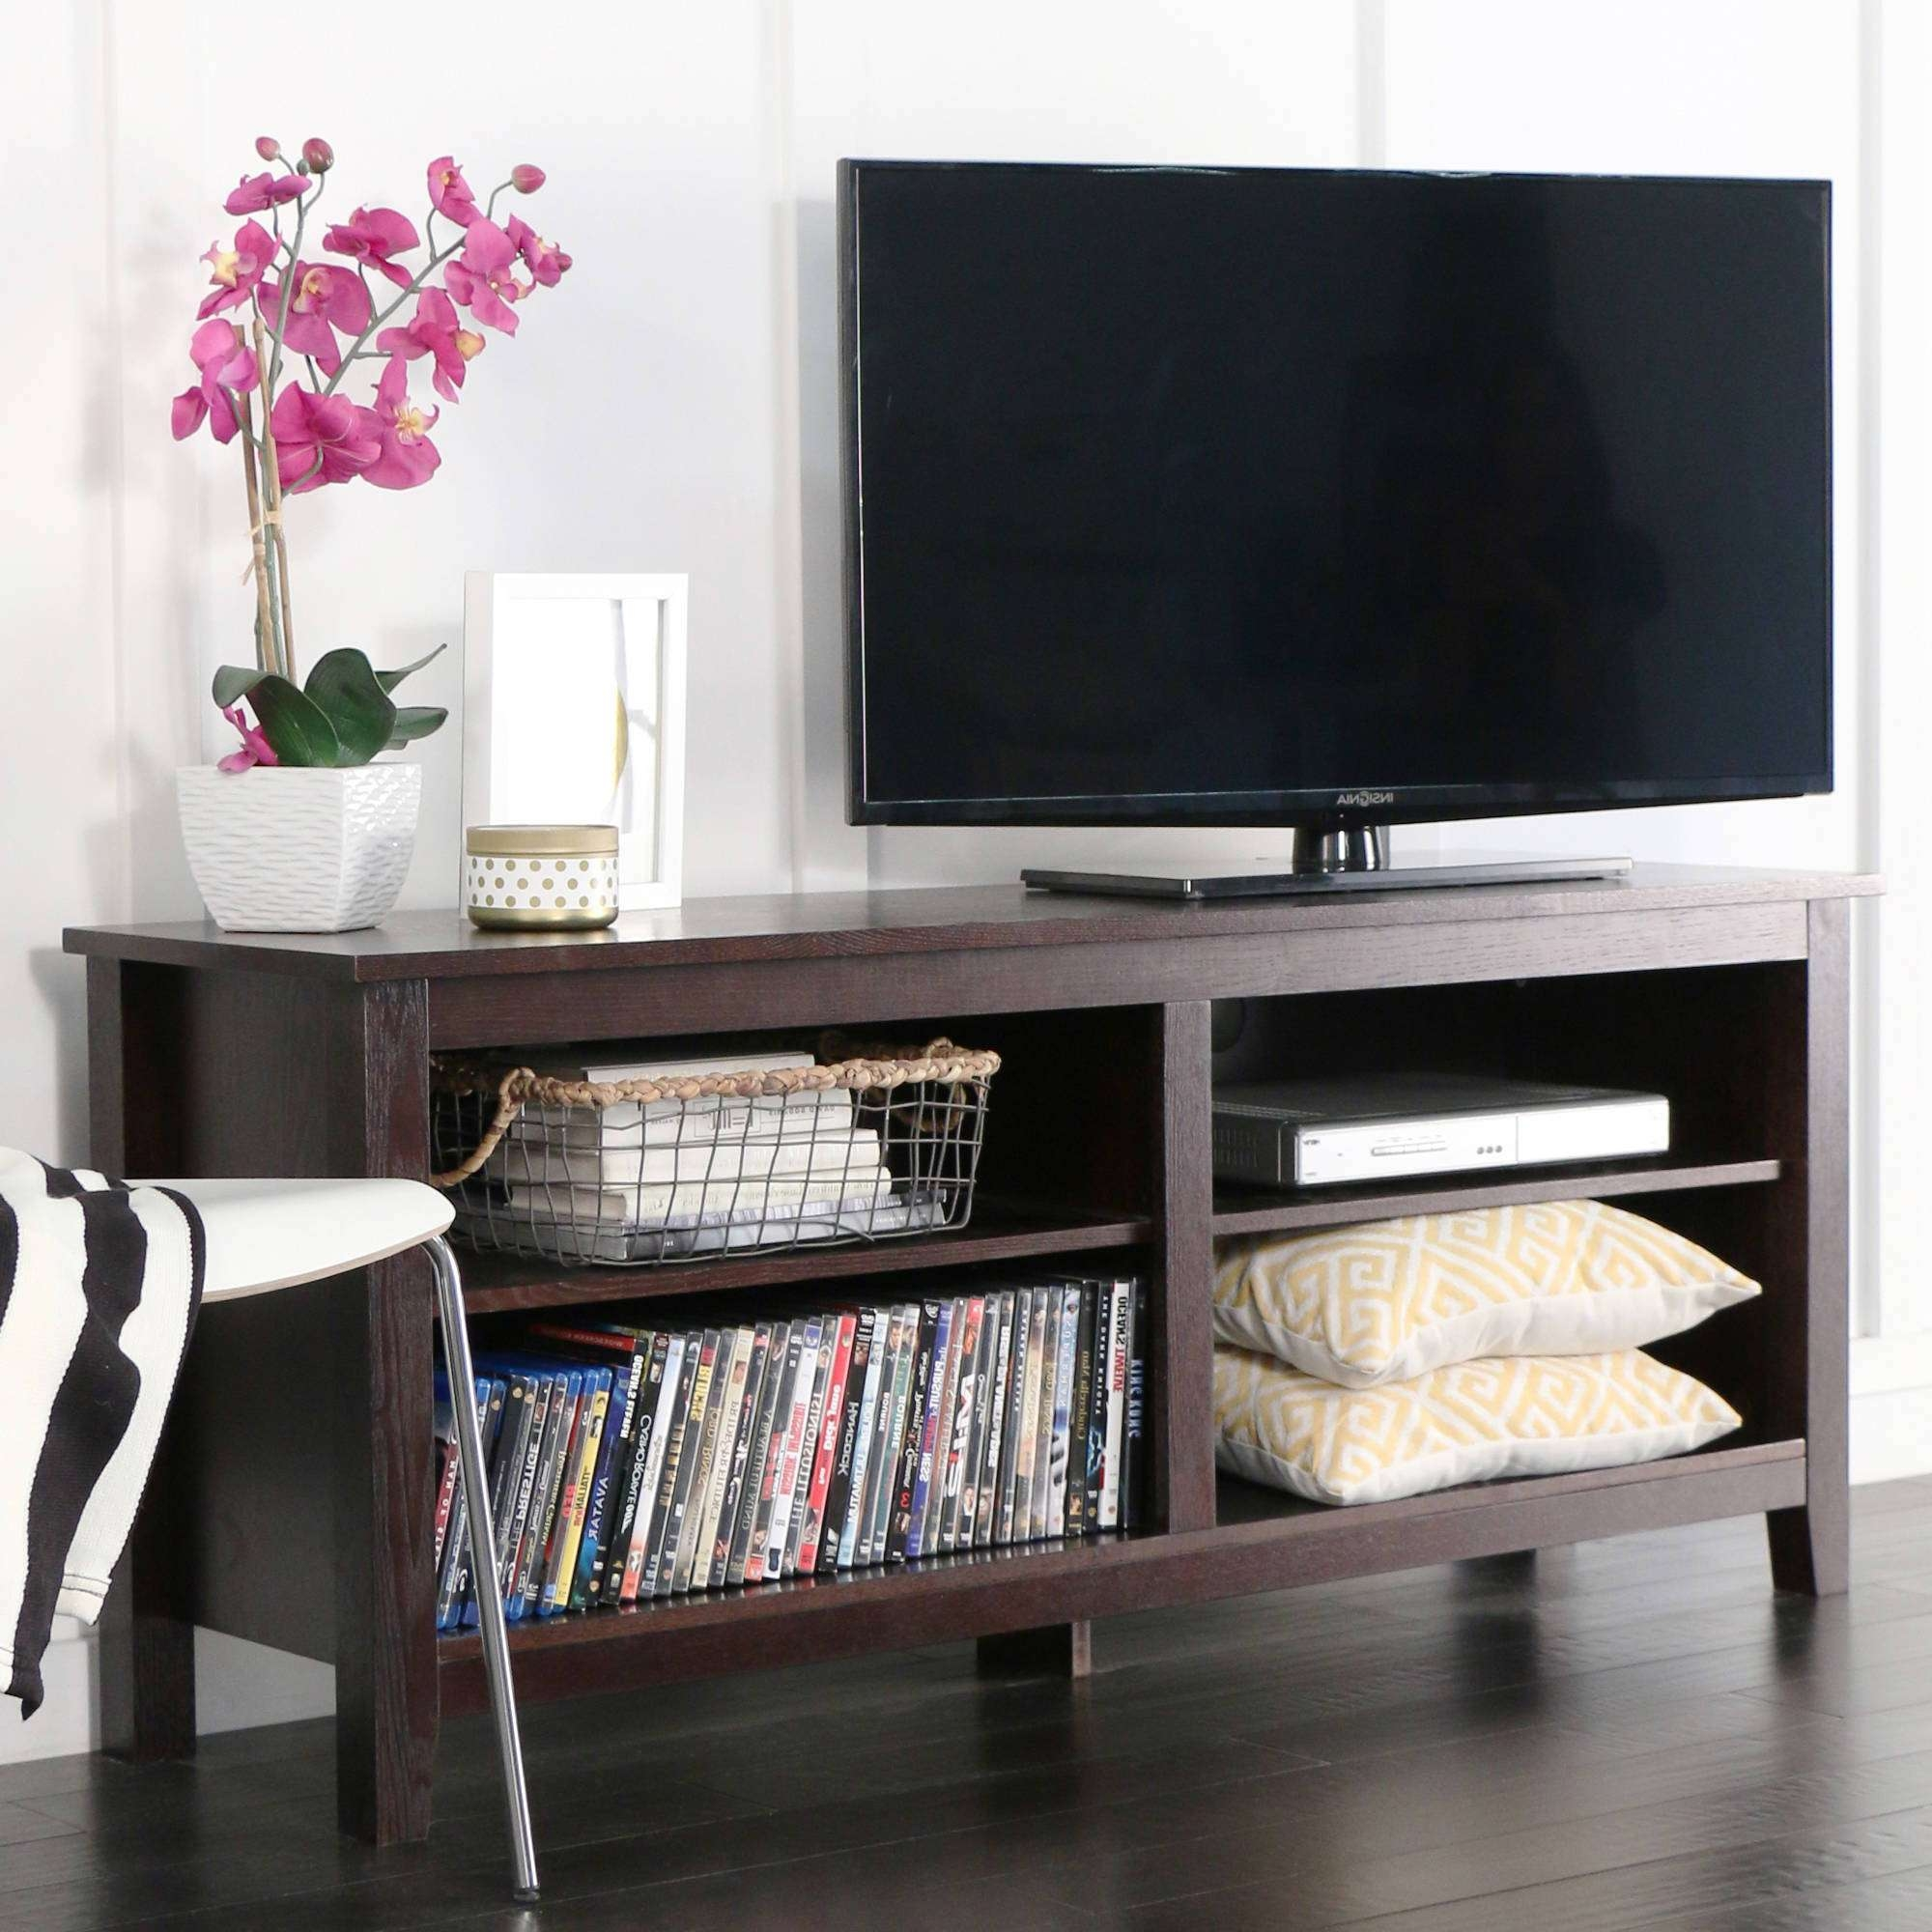 "Walker Edison Reclaimed Wood Tv Stand For Tvs Up To 70"", Multiple Throughout Dark Wood Tv Stands (View 15 of 15)"